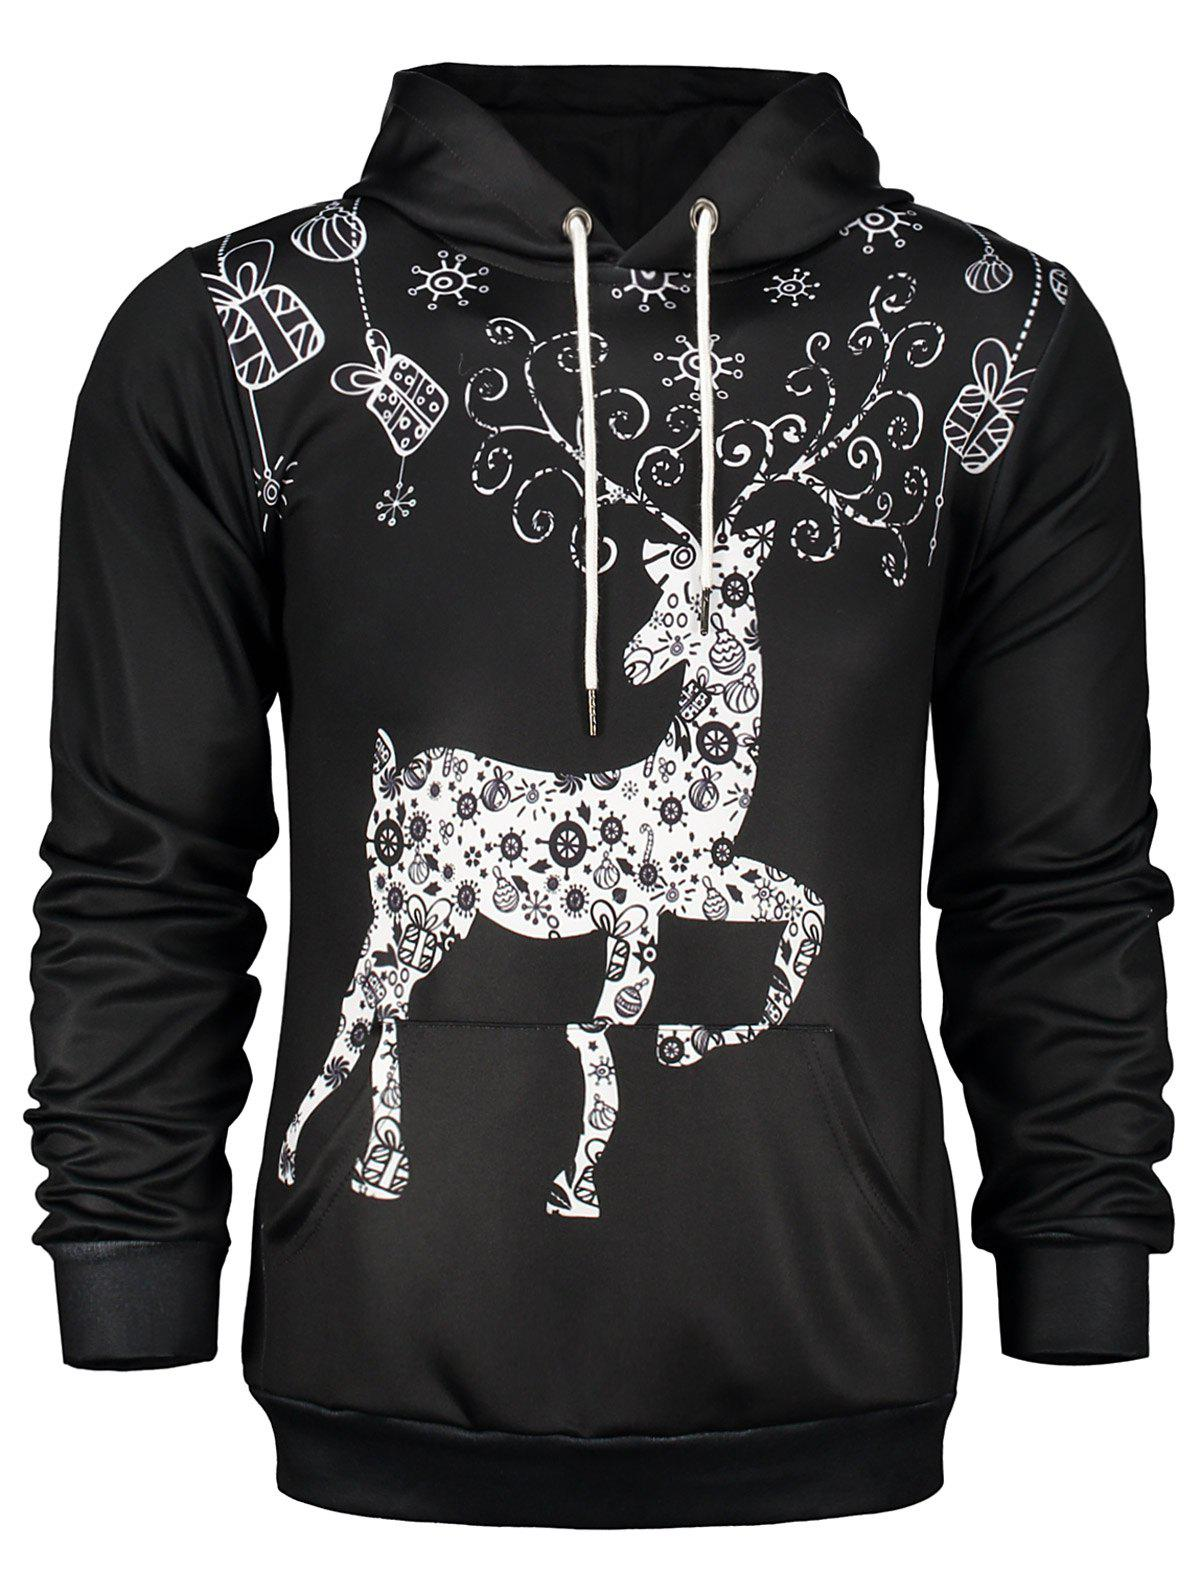 Deer Print Pocket Front Christmas Black Hoodie MensMEN<br><br>Size: L; Color: BLACK; Material: Cotton Blends; Shirt Length: Regular; Sleeve Length: Full; Style: Fashion; Weight: 0.500kg; Package Contents: 1 x Hoodie;